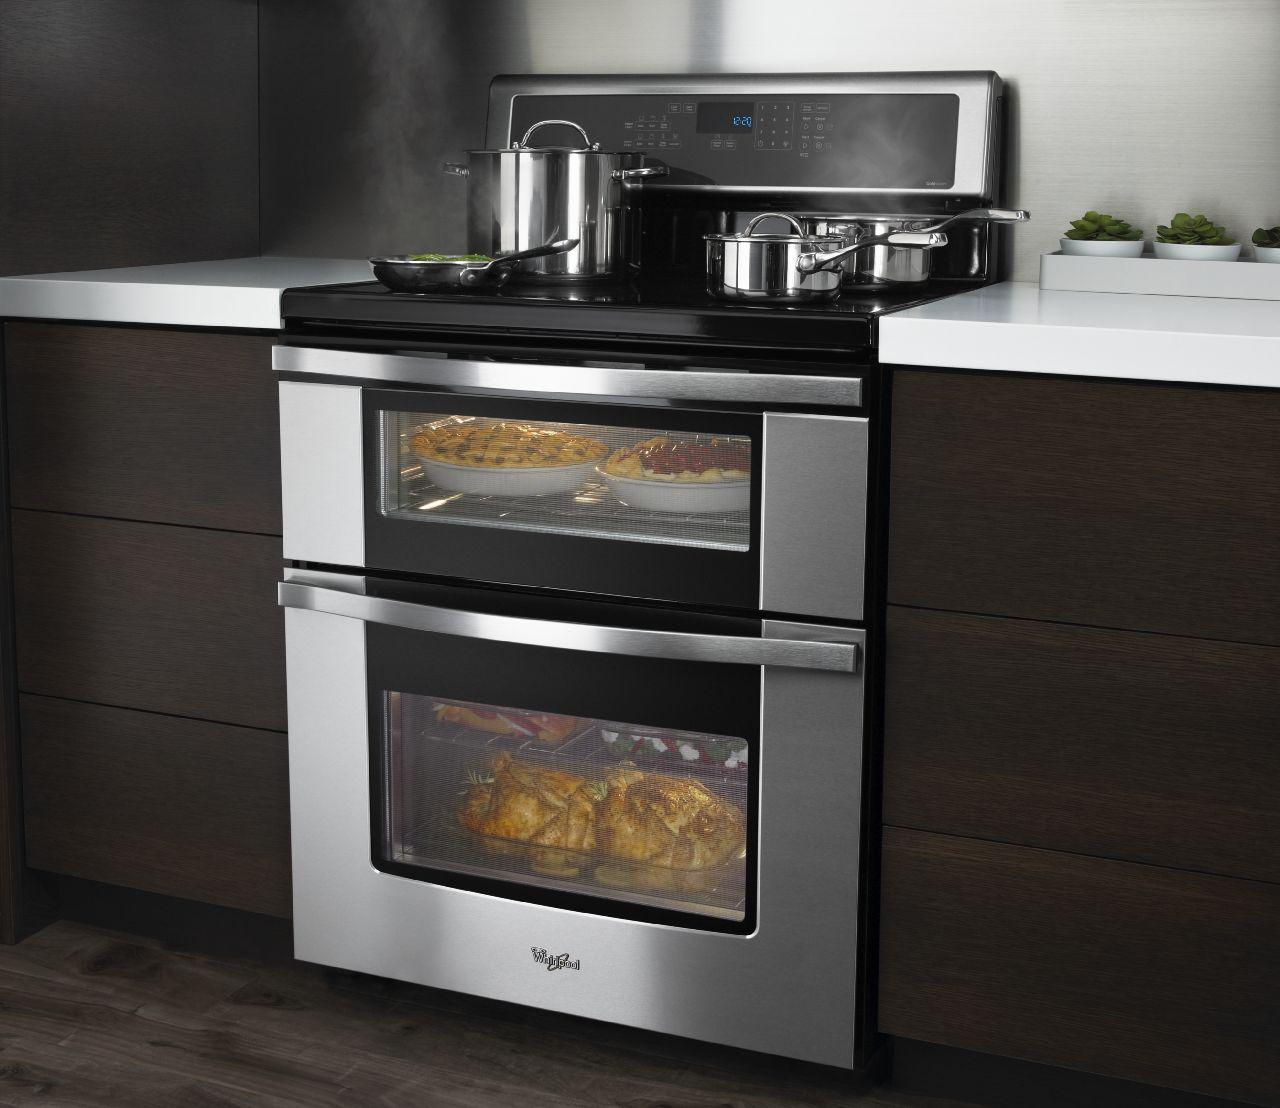 Reasons To Buy A Double Oven Happy S Appliances